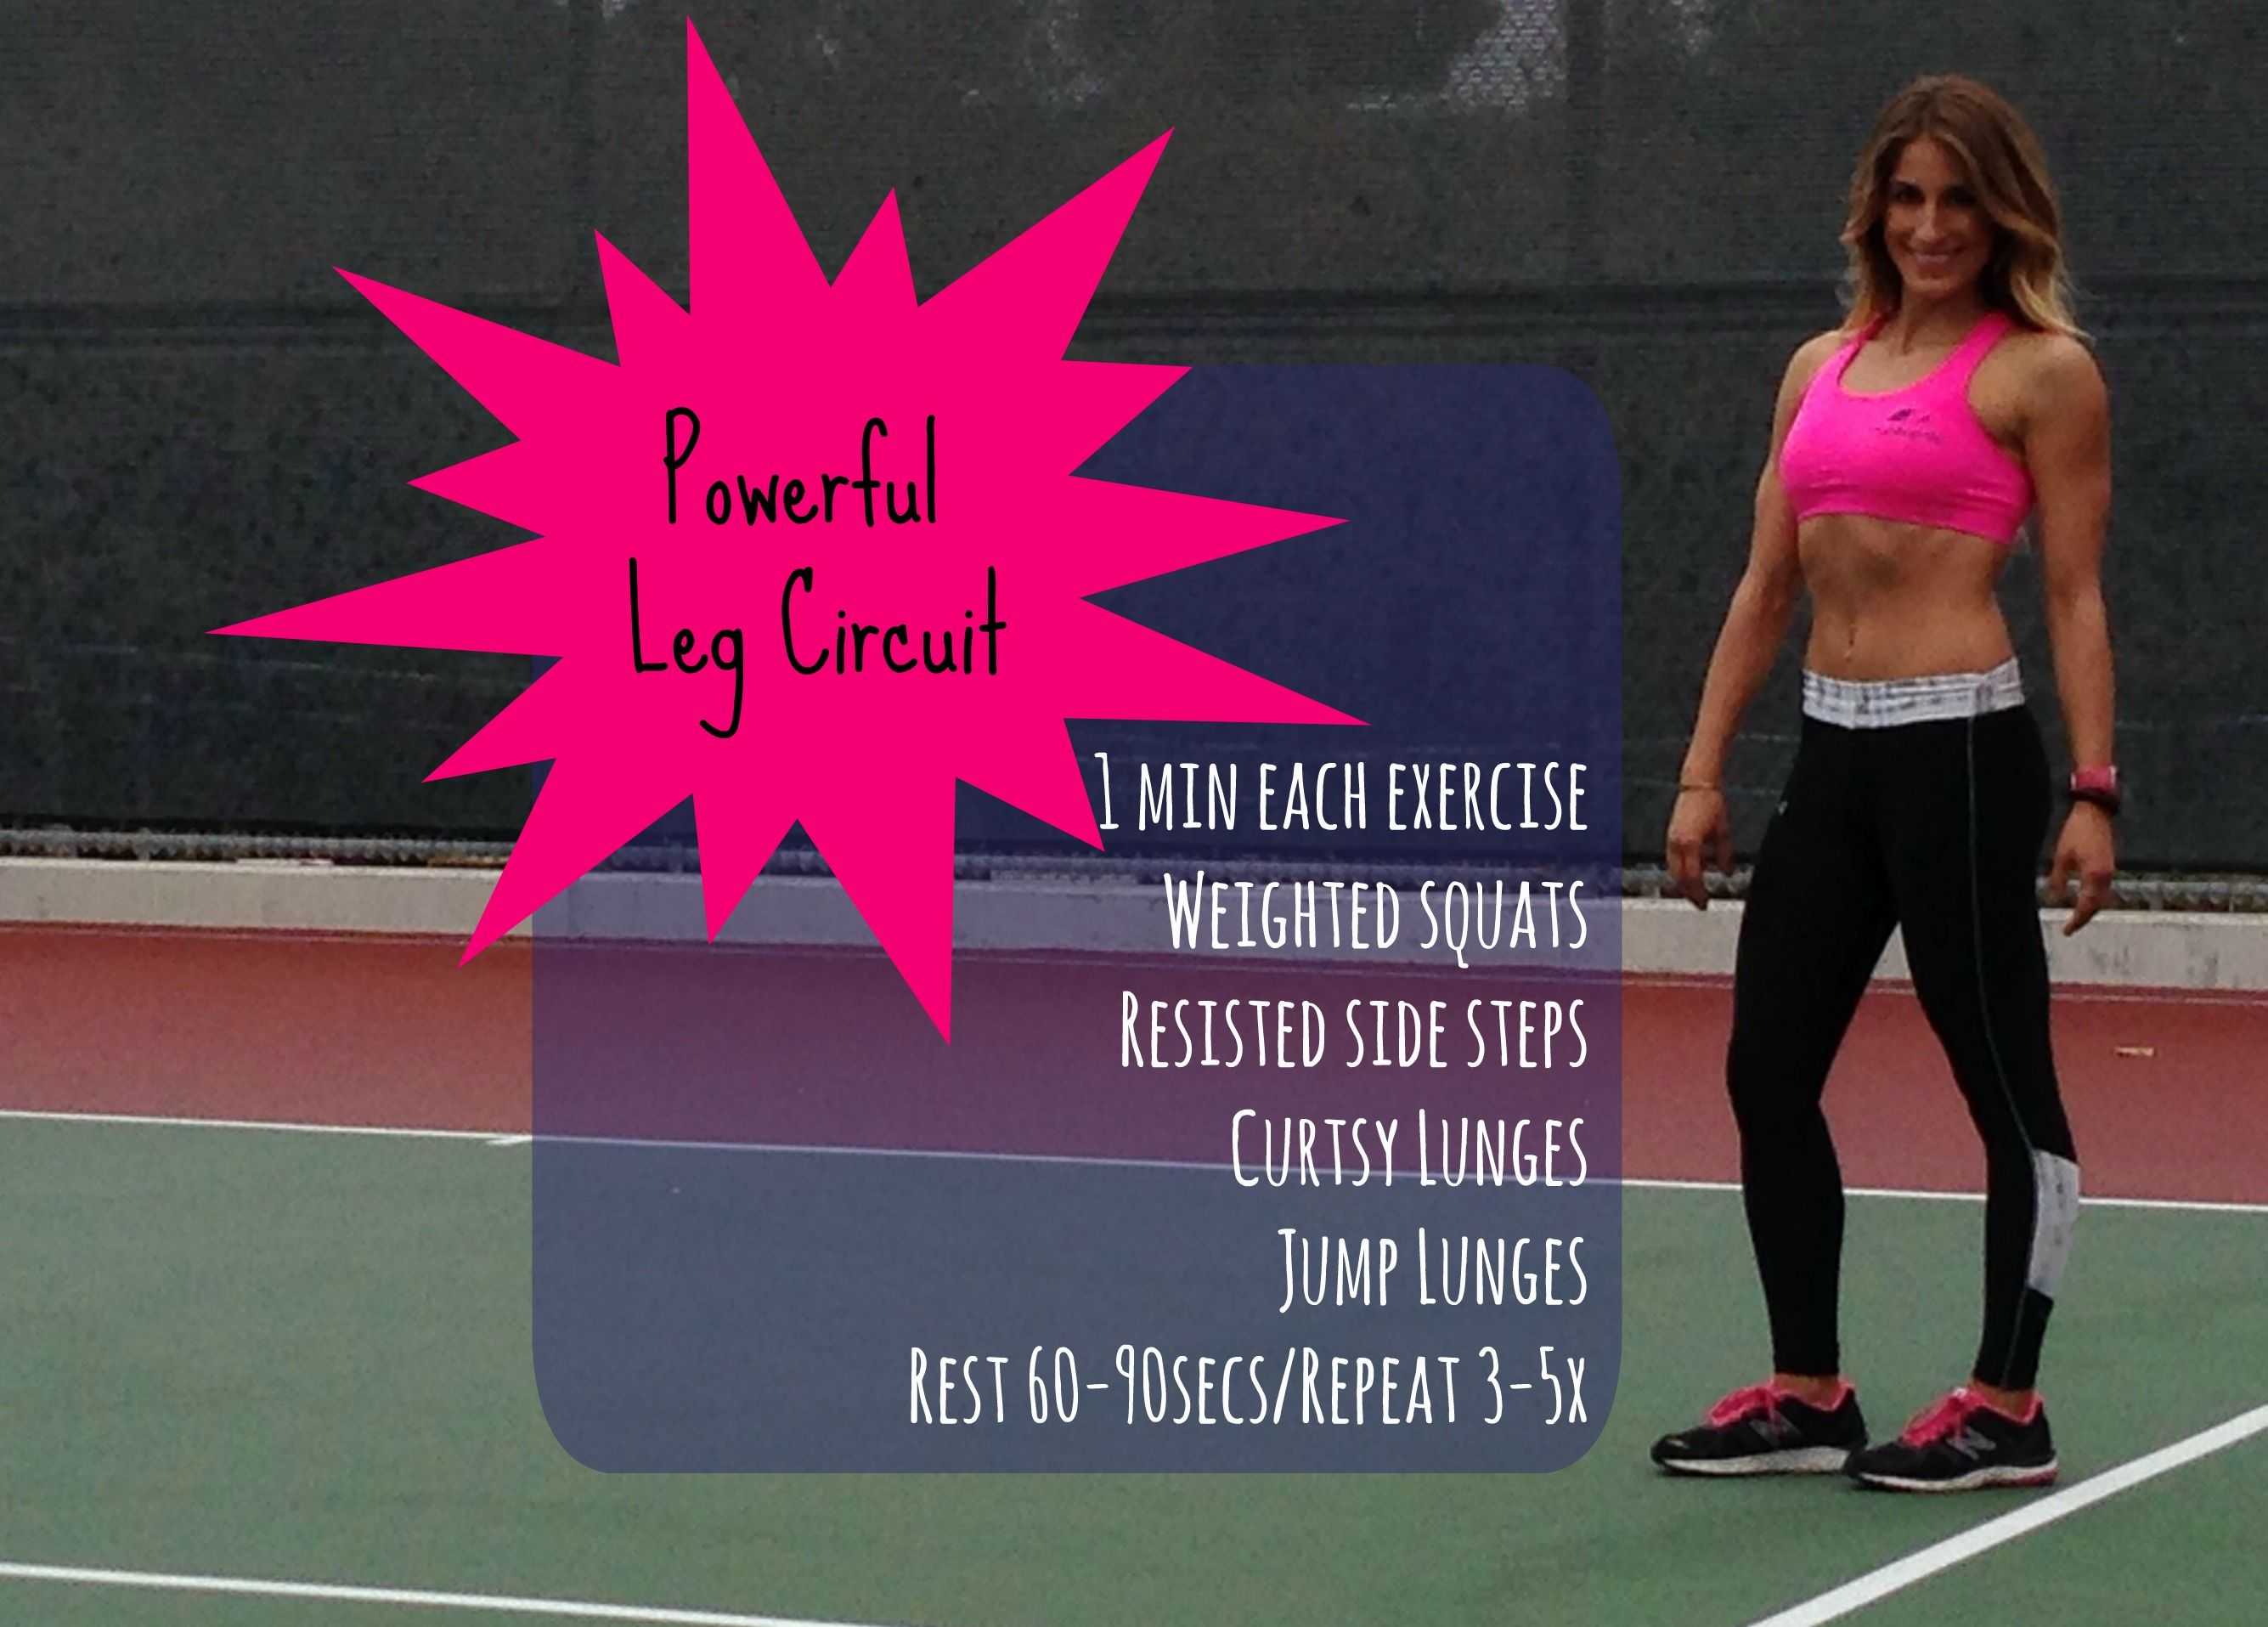 Love Your Legs Workout And Sexy T The Burnlegs Killer Circuit Totally Dead Who Doesnt Want Nice Toned Sculpted This Leg Is Intense Will Make You Sweat Perfect When Dont Have Much Time At Gym